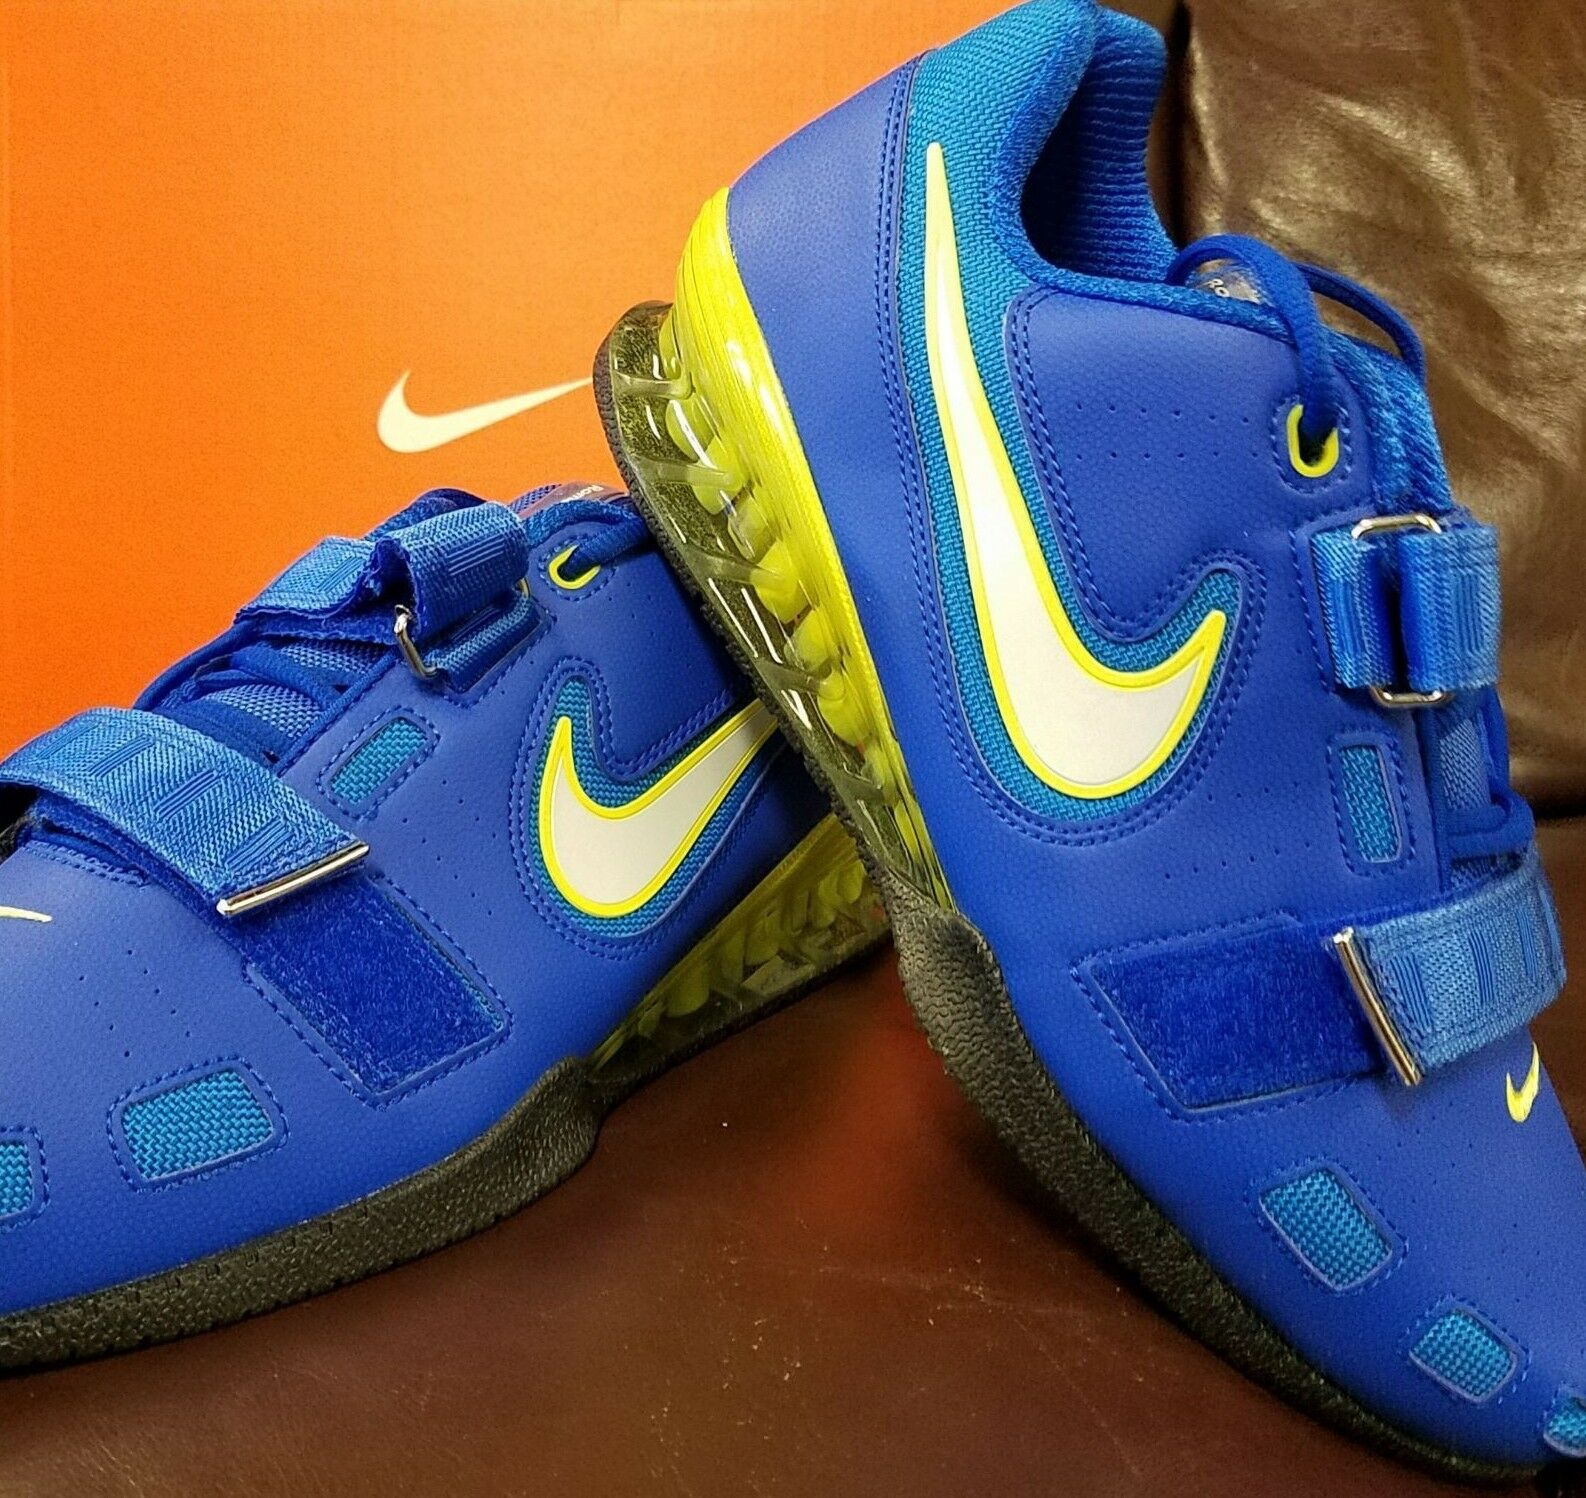 BRAND NEW IN BOX! NIKE ROMALEOS 2 MENS WEIGHTLIFTING SHOES BLUE WHITE SWOOSH 417 Cheap women's shoes women's shoes